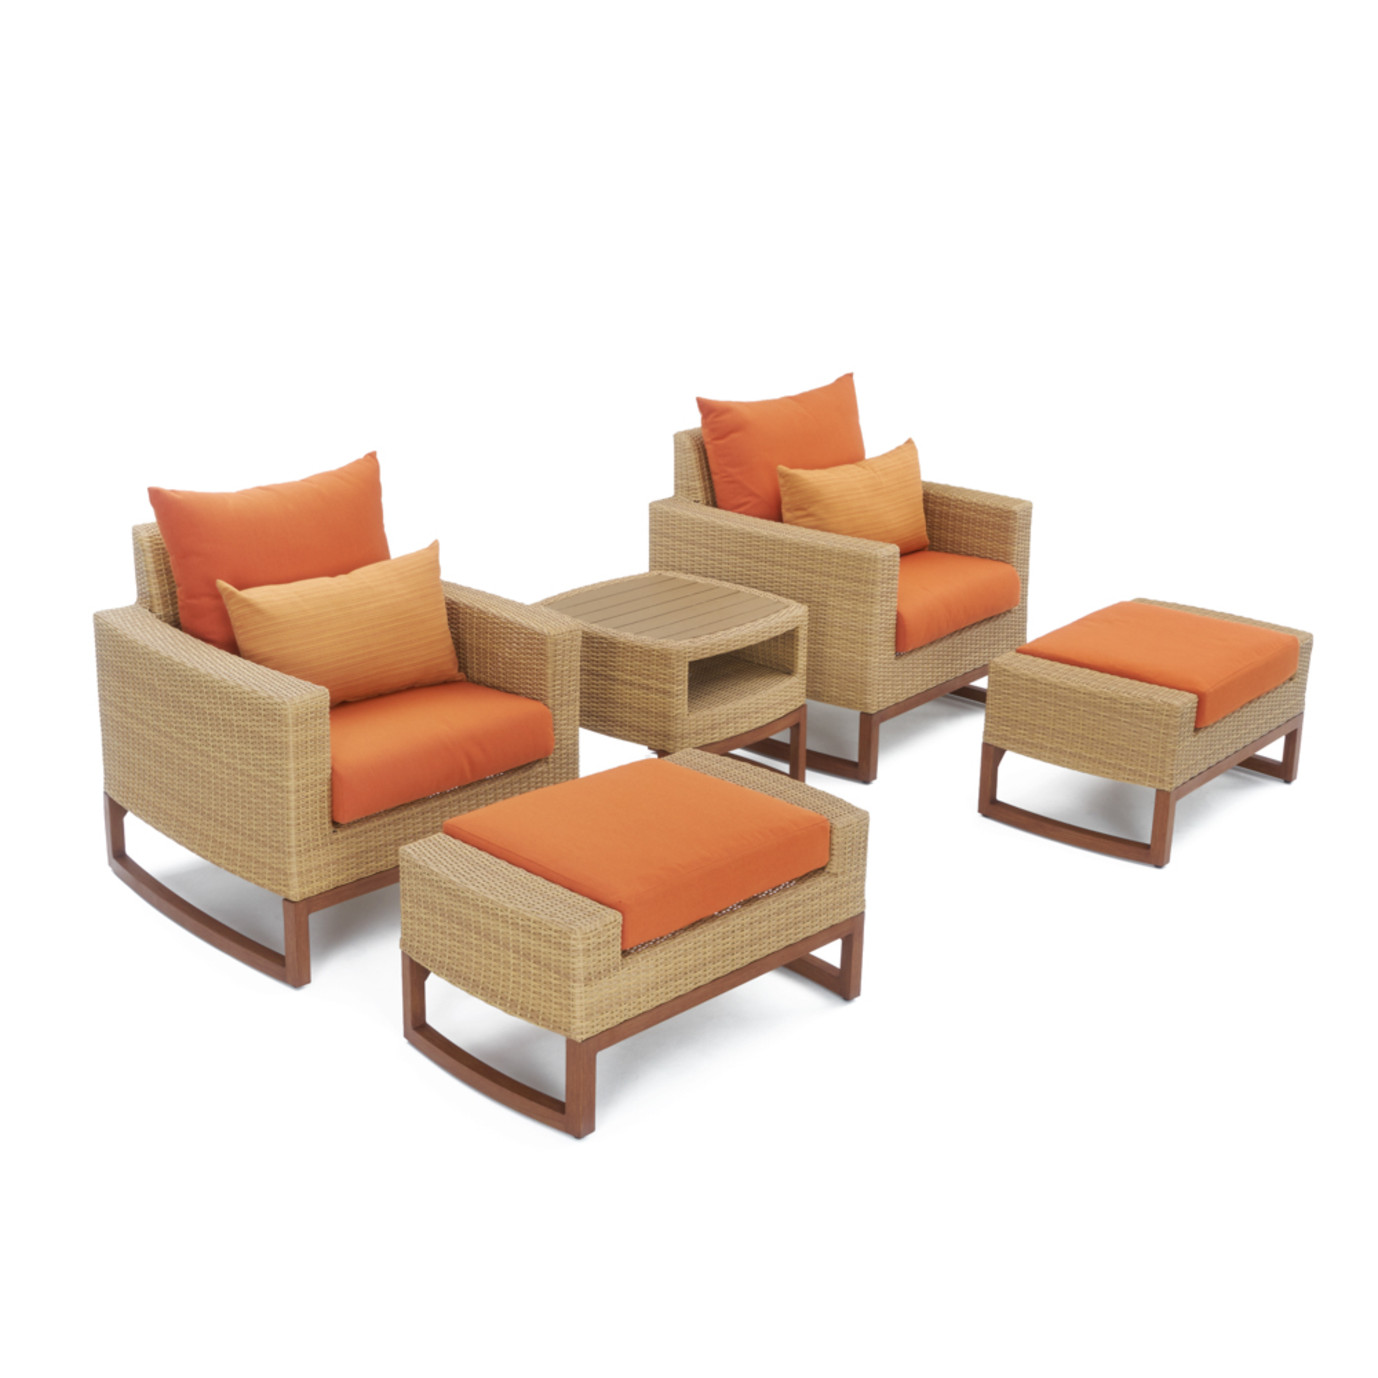 Mili™ 8 Piece Deep Seating Set - Tikka Orange